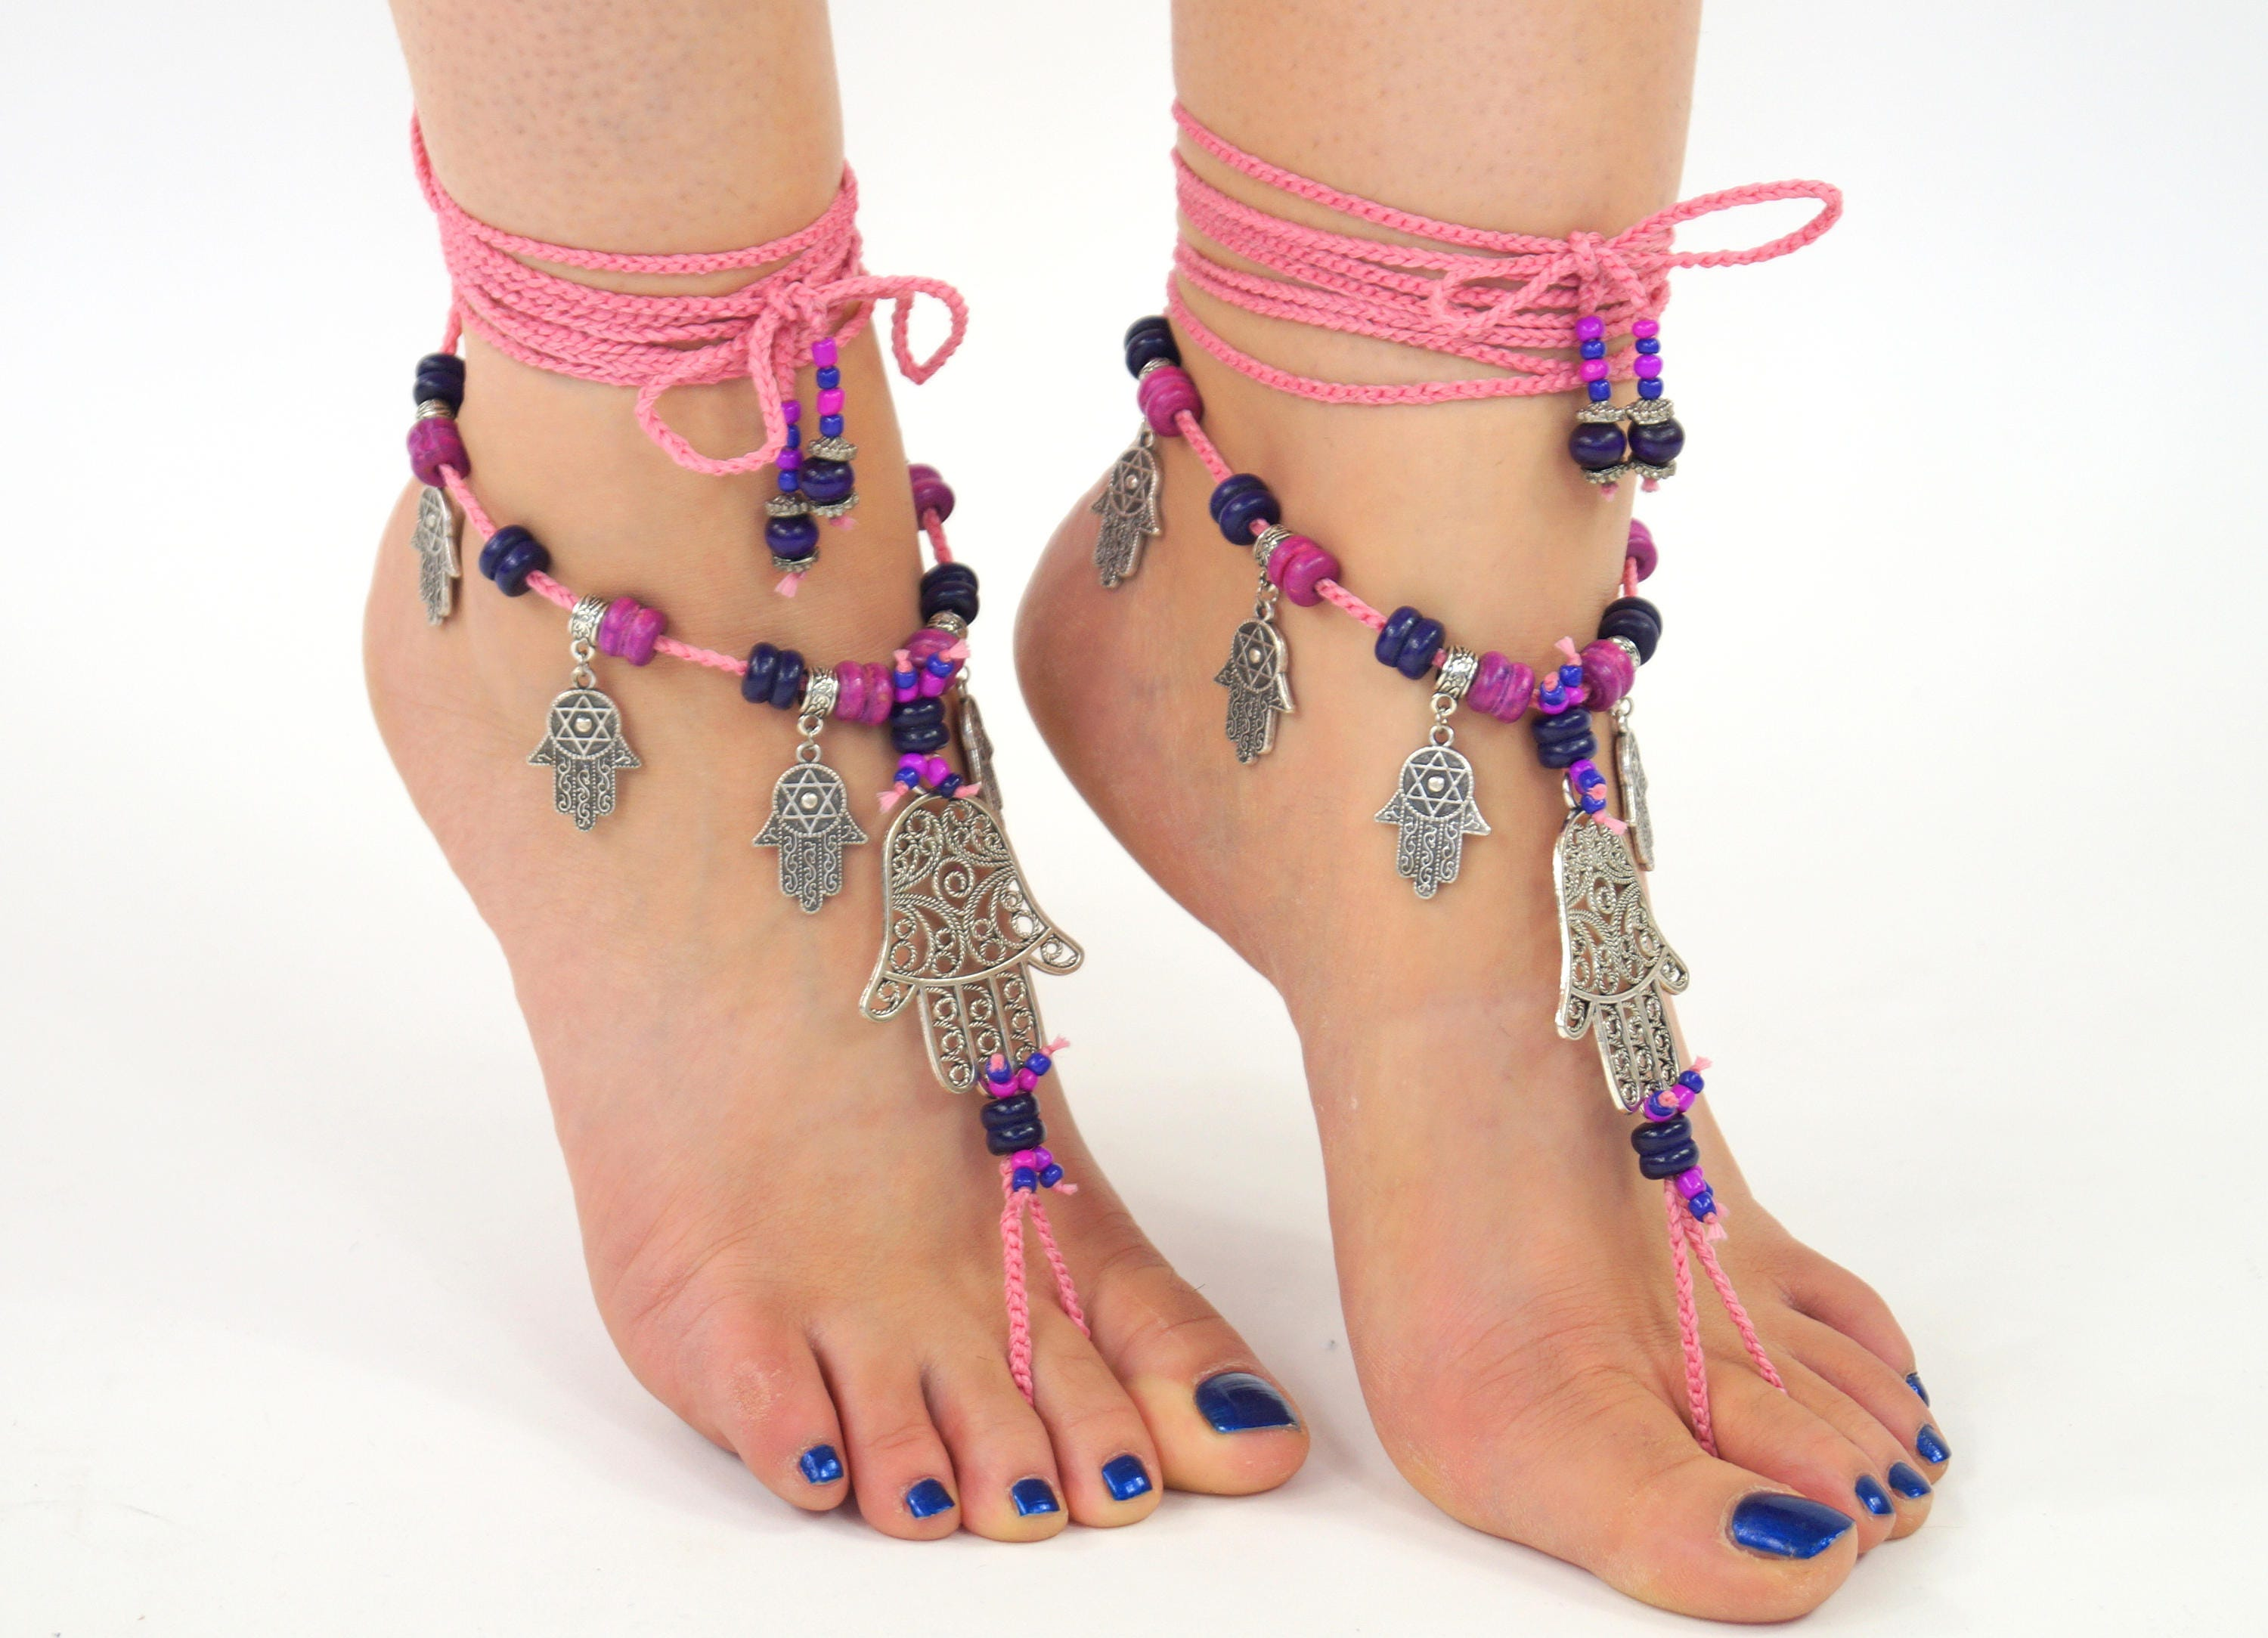 silver beach yogi anklets boho ankle gift women lotus product surf festival for anklet bracelet yoga